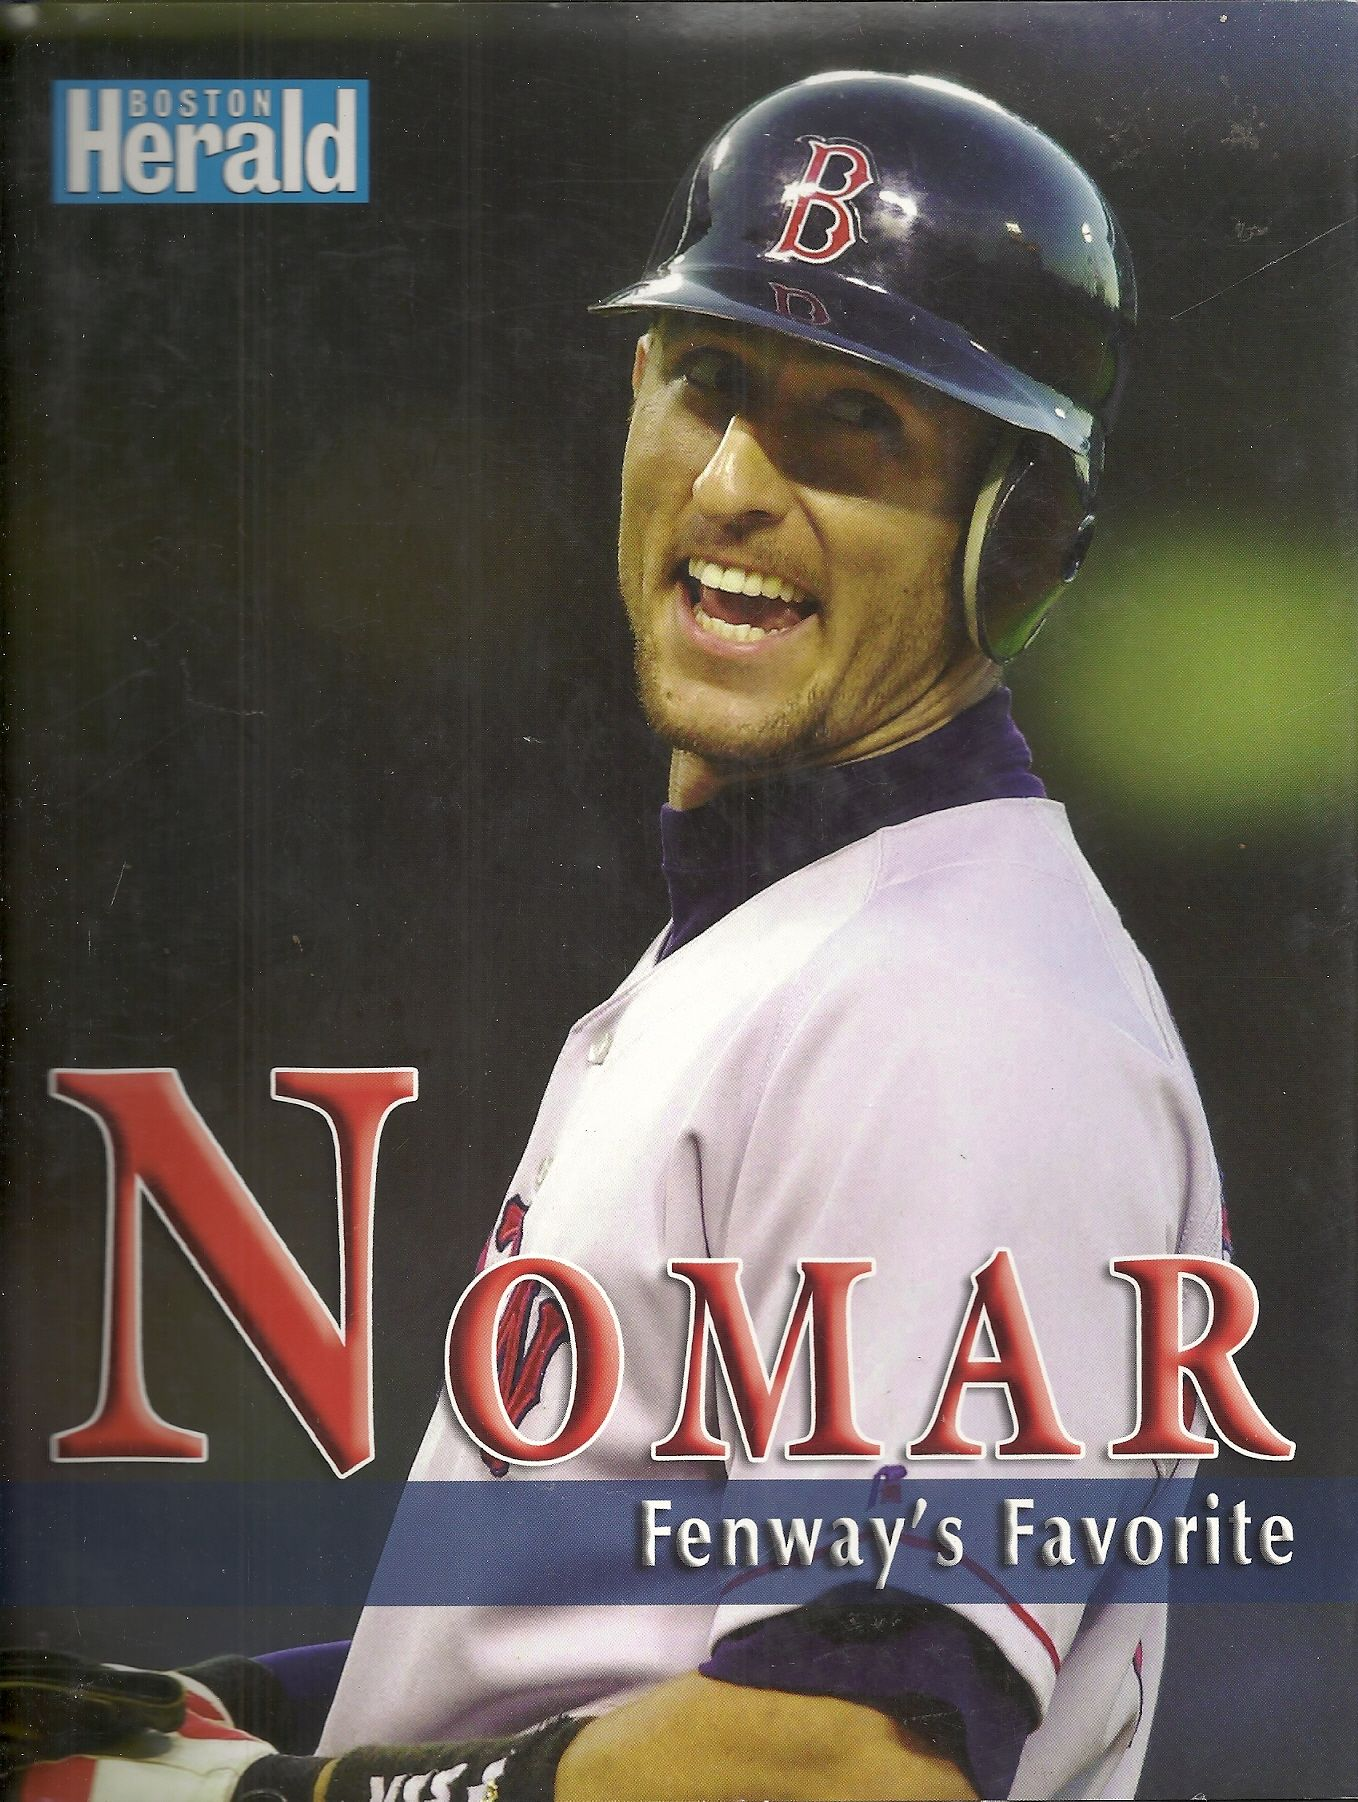 Nomar Garciaparra: Fenway Favorite, Boston Herald